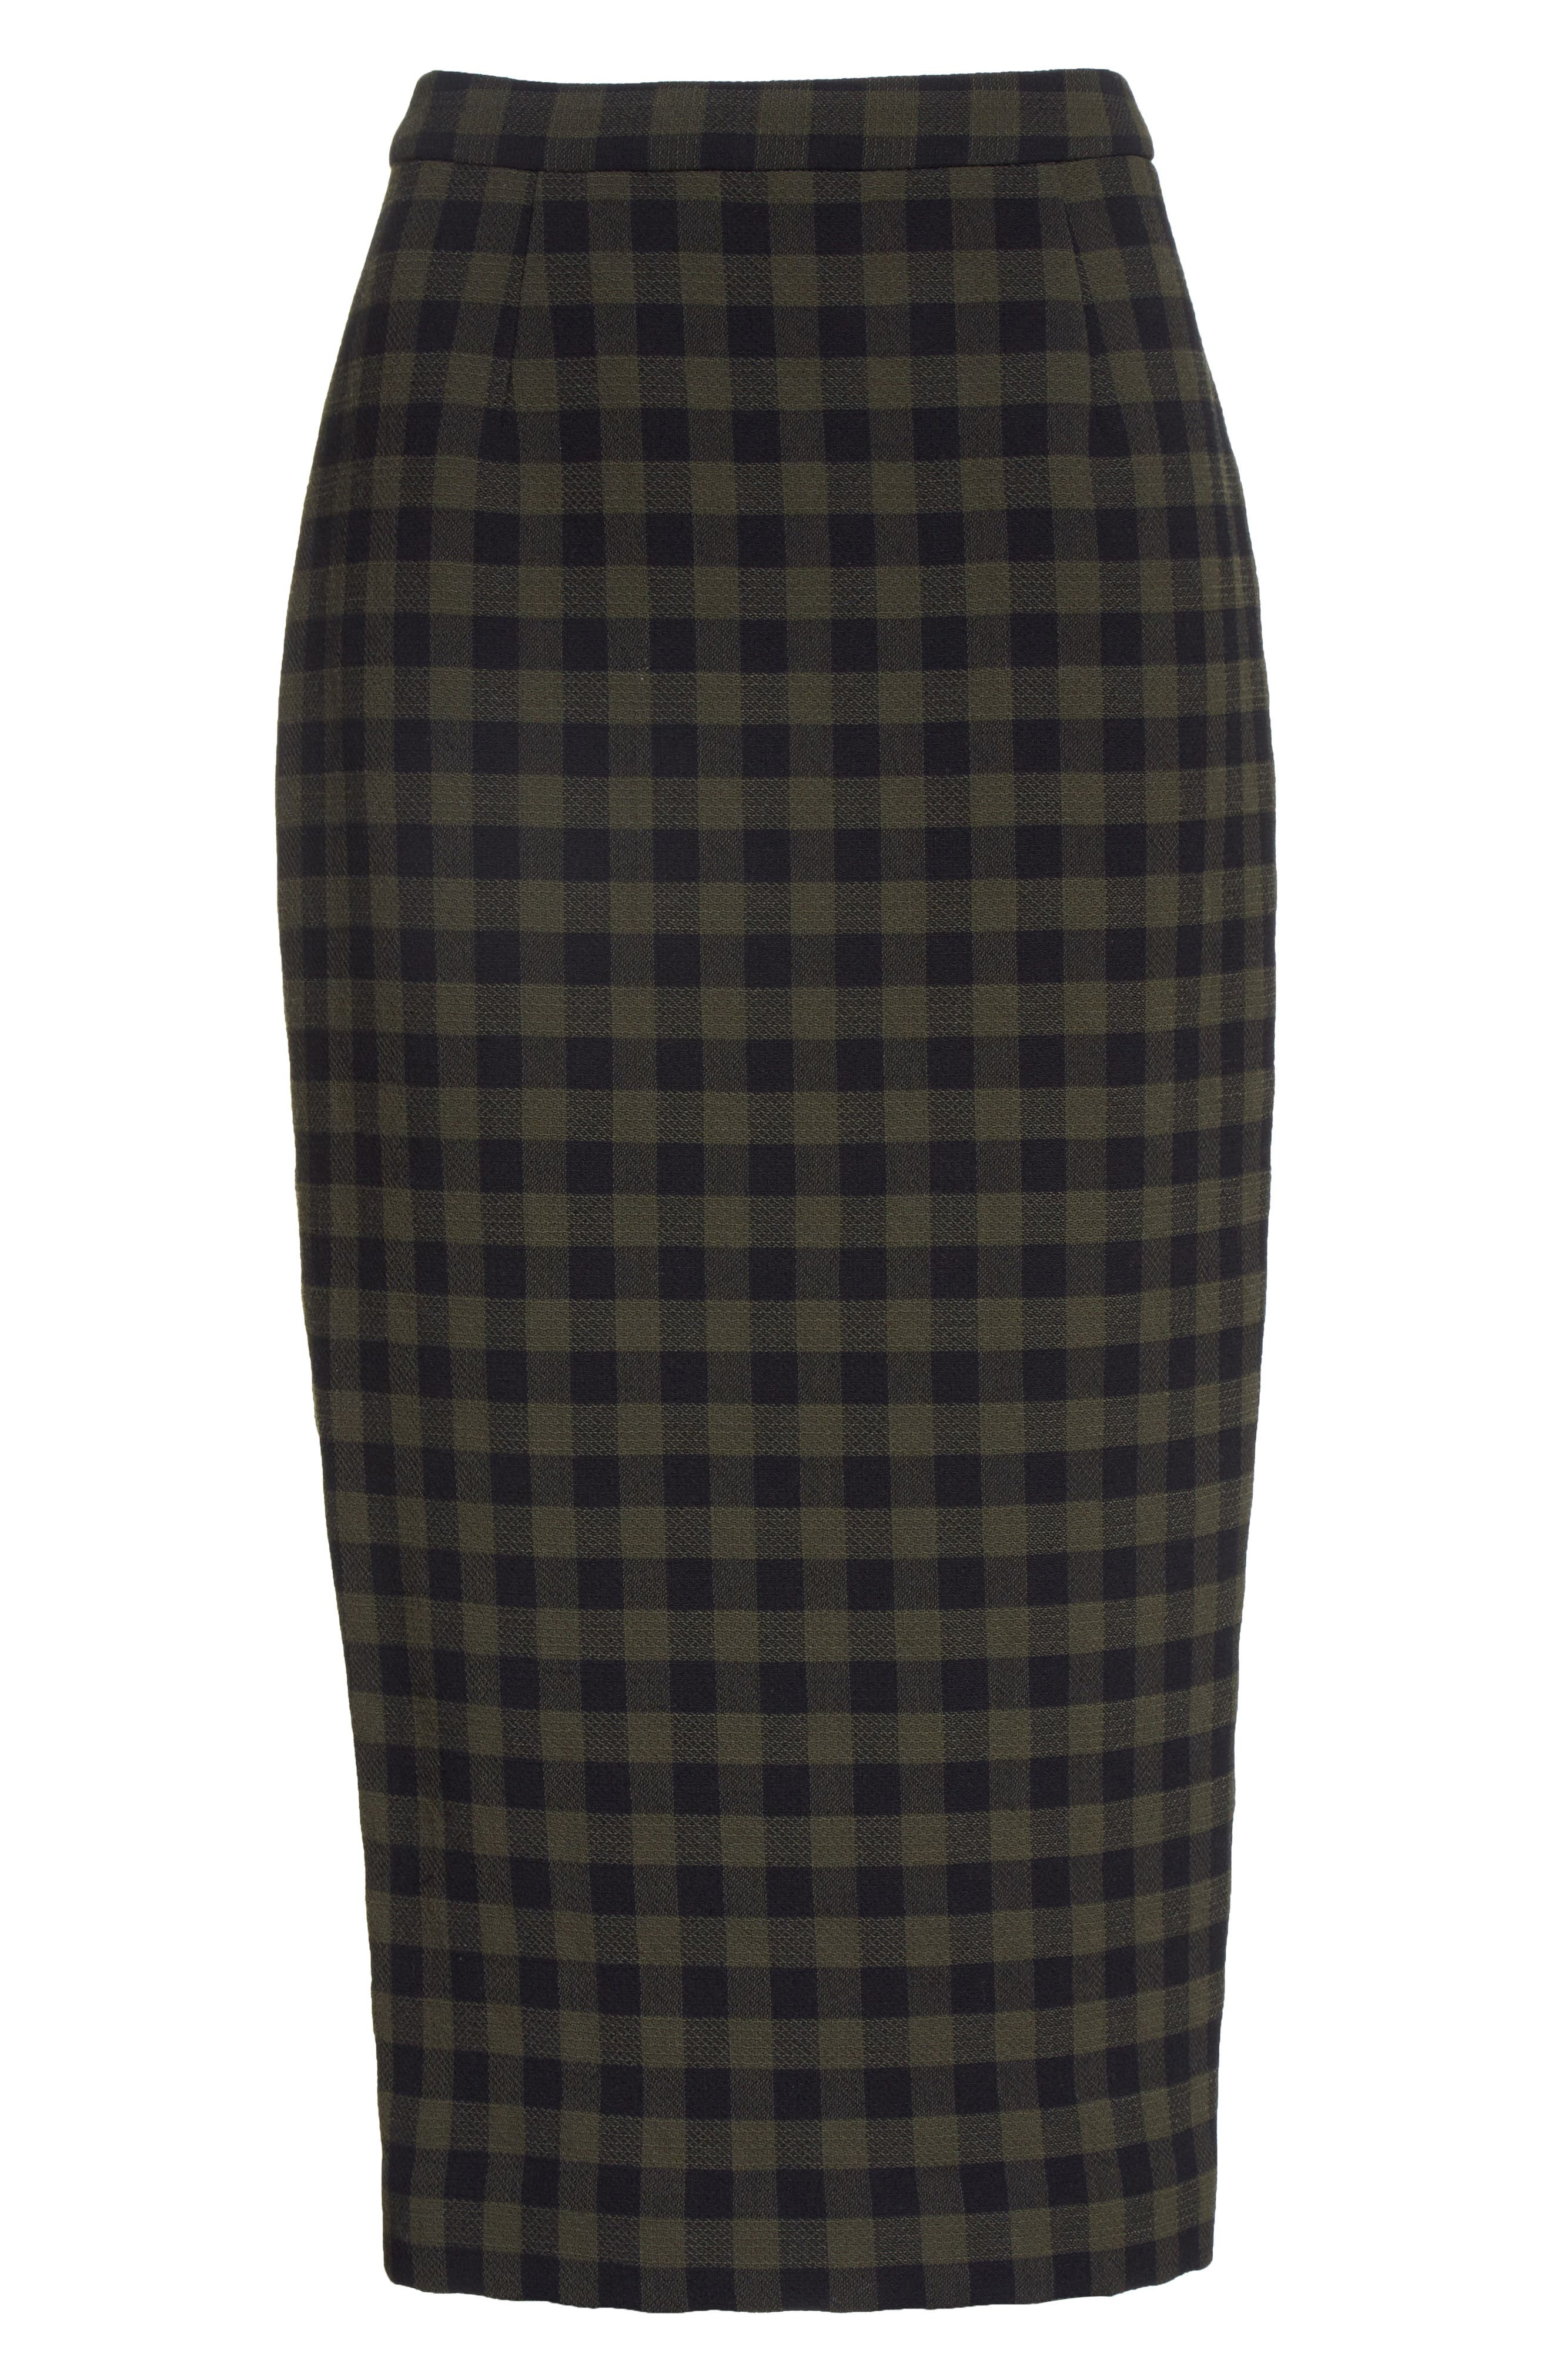 Thea Plaid Wool Pencil Skirt,                             Alternate thumbnail 7, color,                             Army/ Black